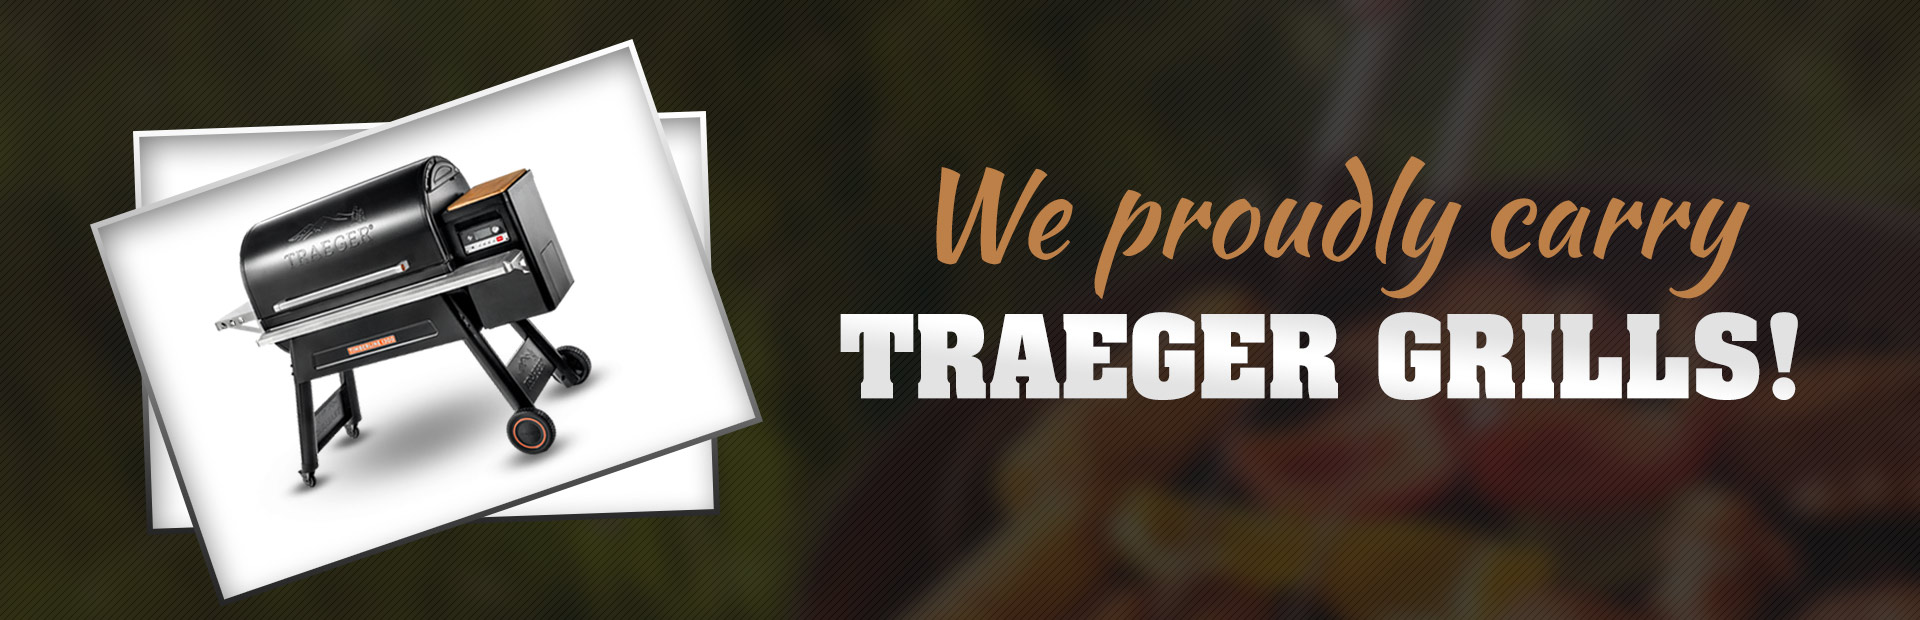 We proudly carry Traeger grills!